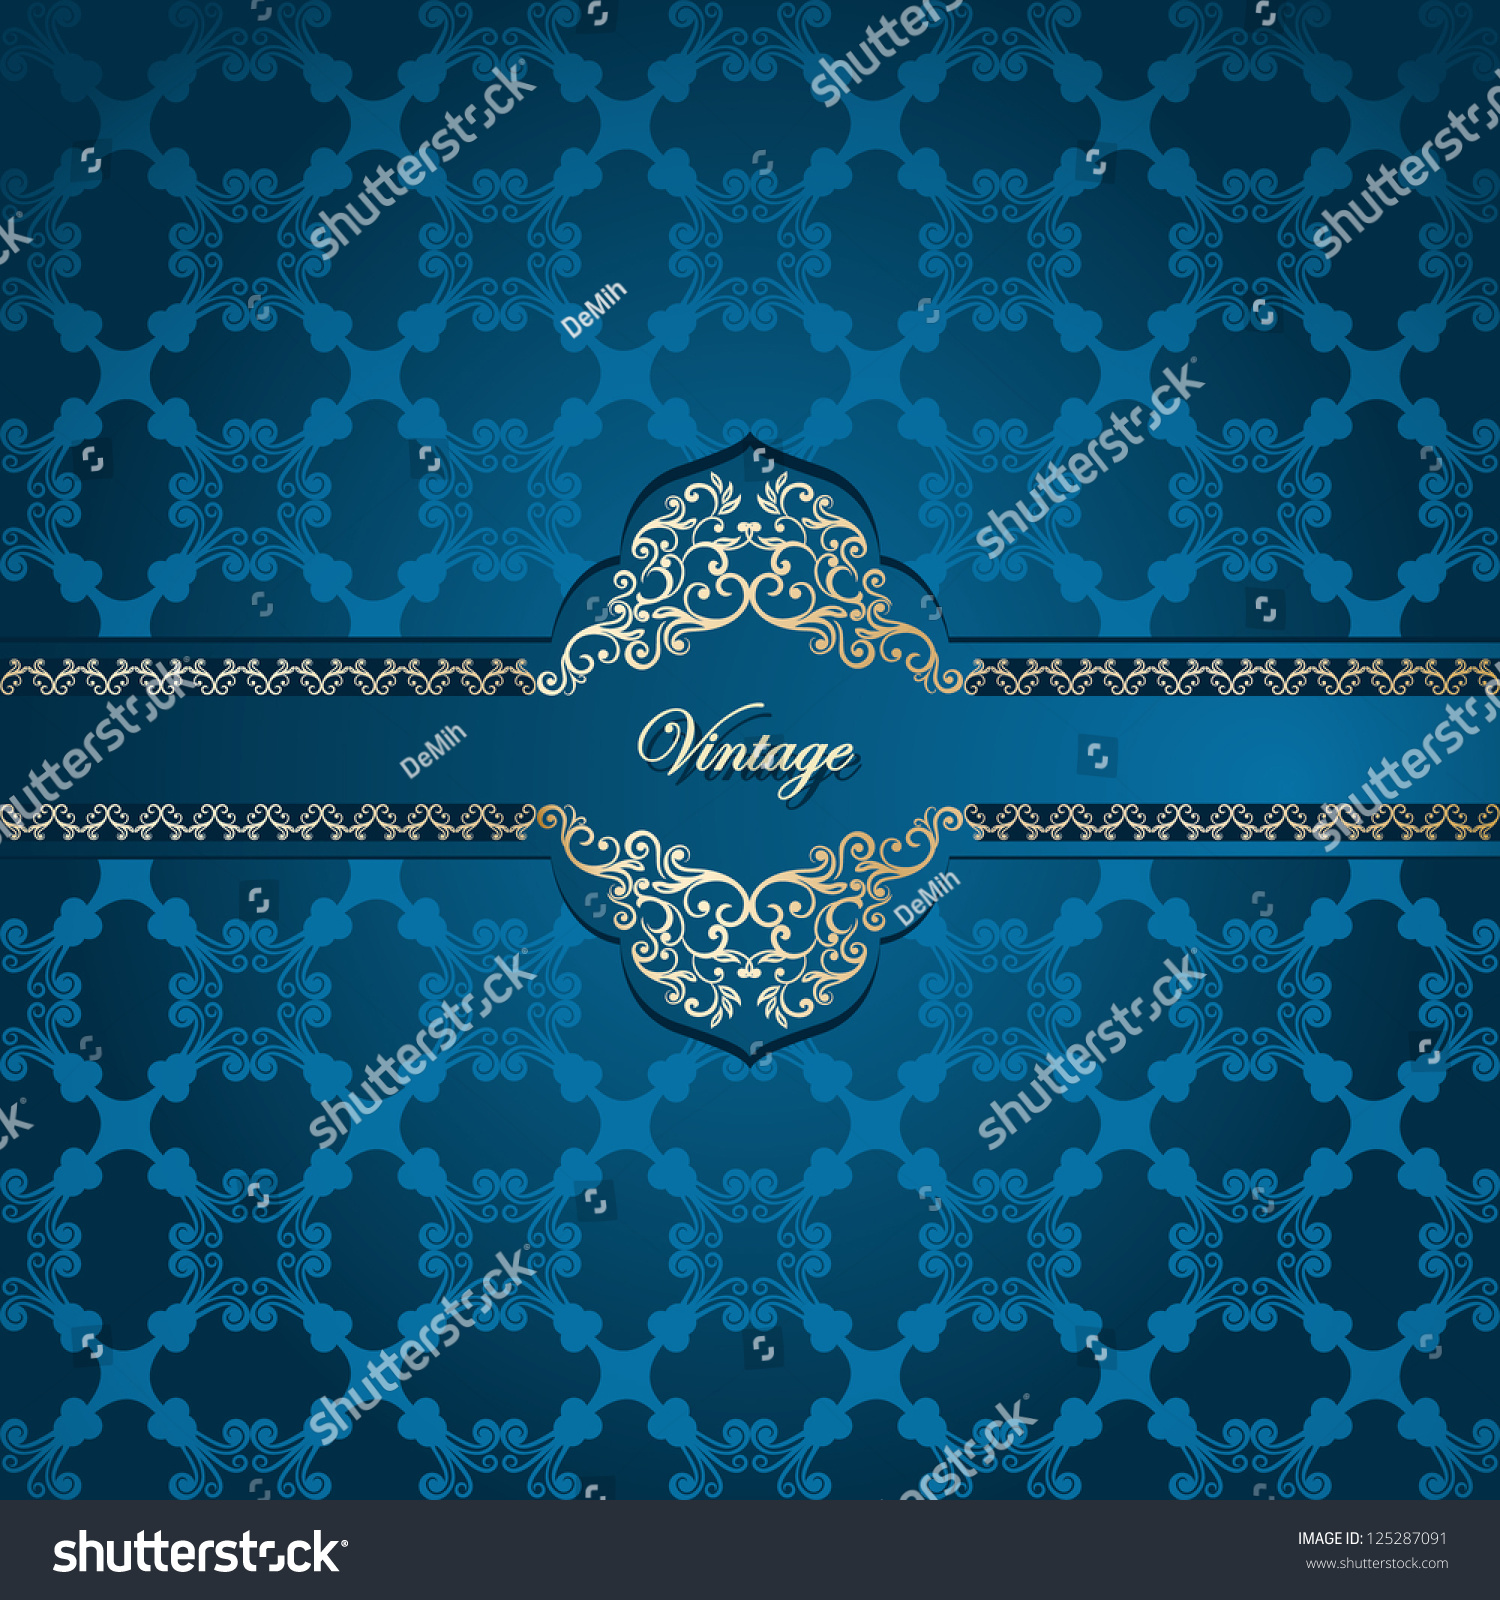 Vintage Frame On Seamless Abstract Damask Wallpaper Stock